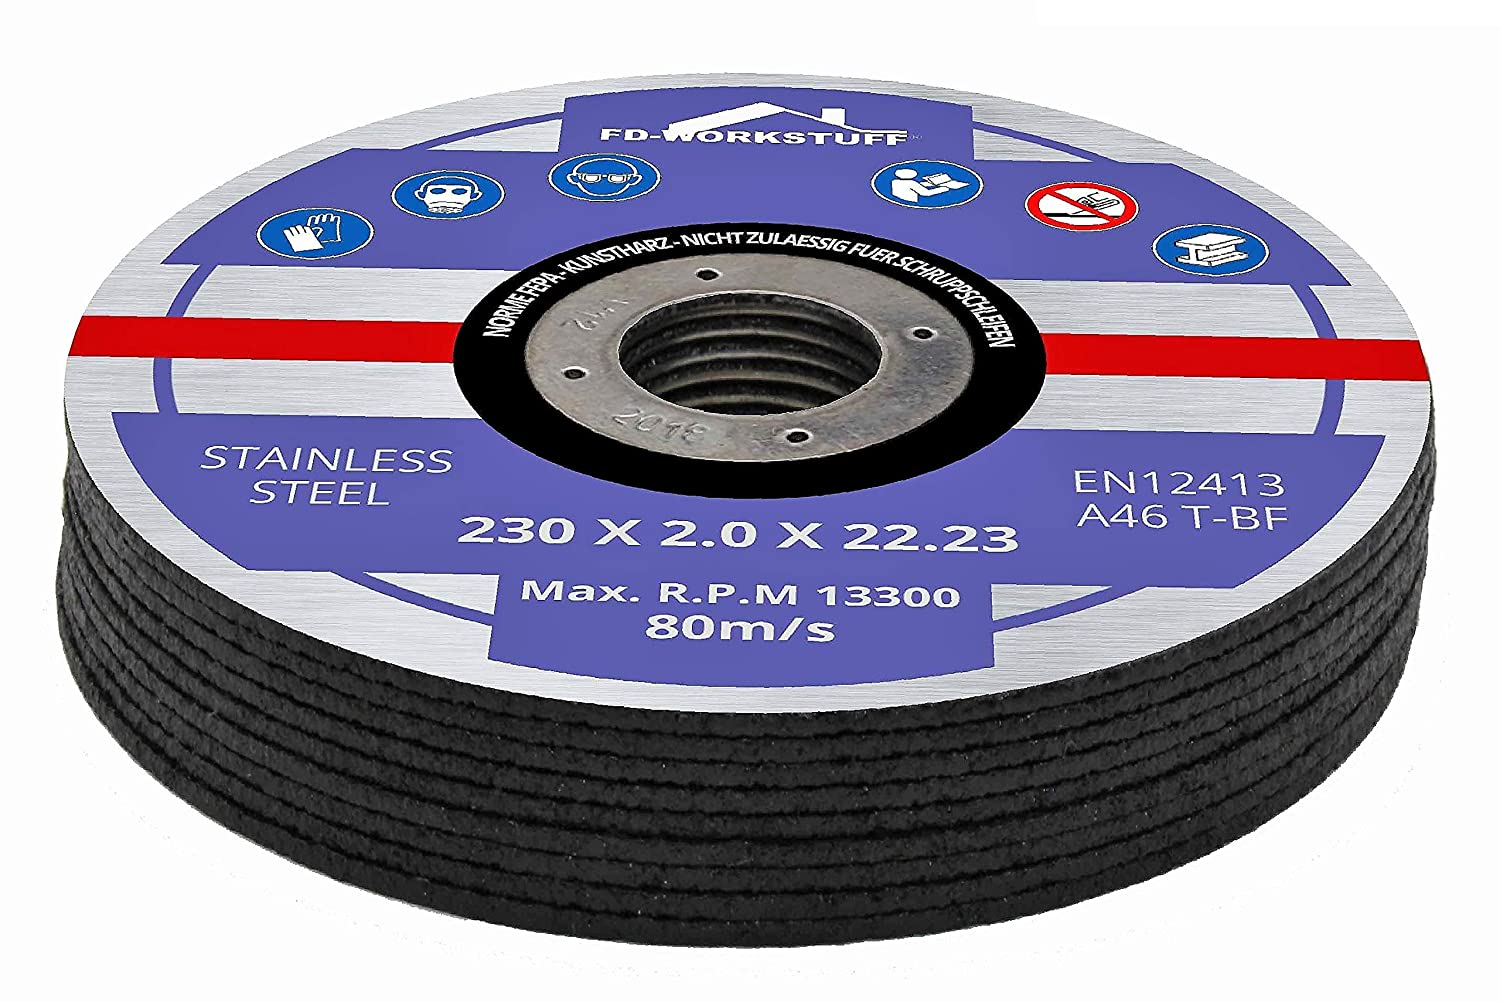 Pack of 10Cutting Disc ø 230mm x 2.0mm for Angle Grinders Stainless Steel Disc Stainless Steel Metal FD-Workstuff